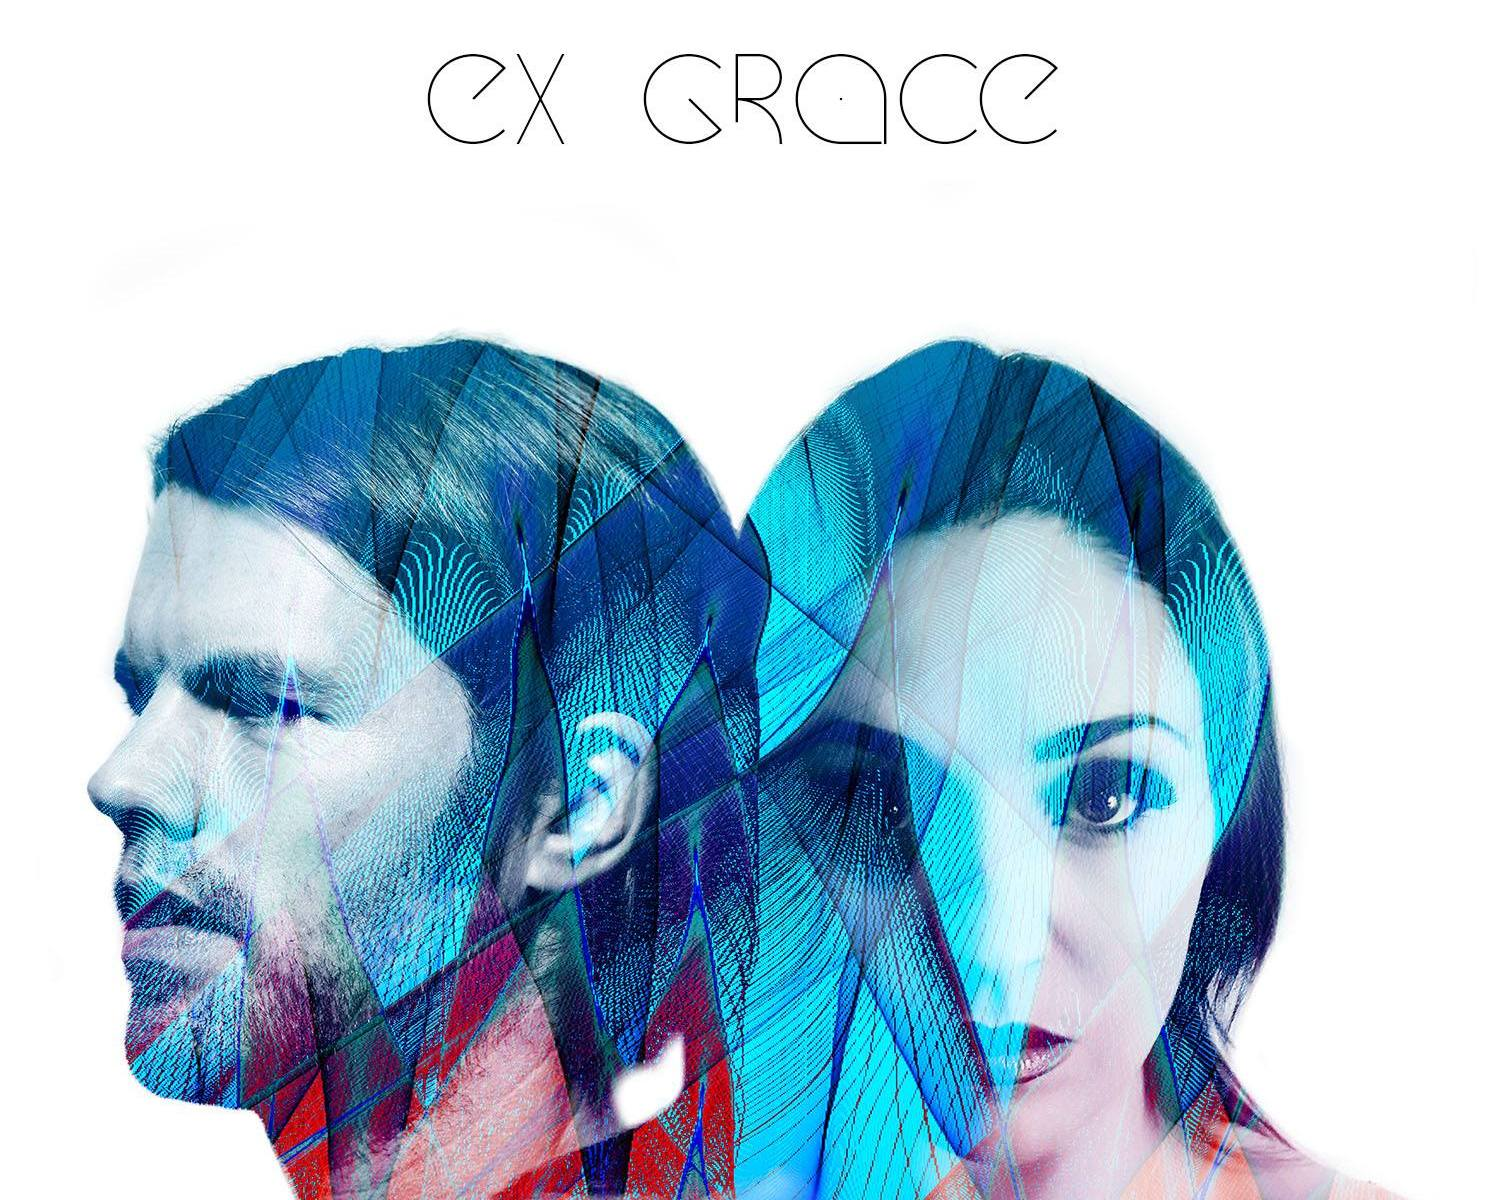 Ex Grace Things in Unison